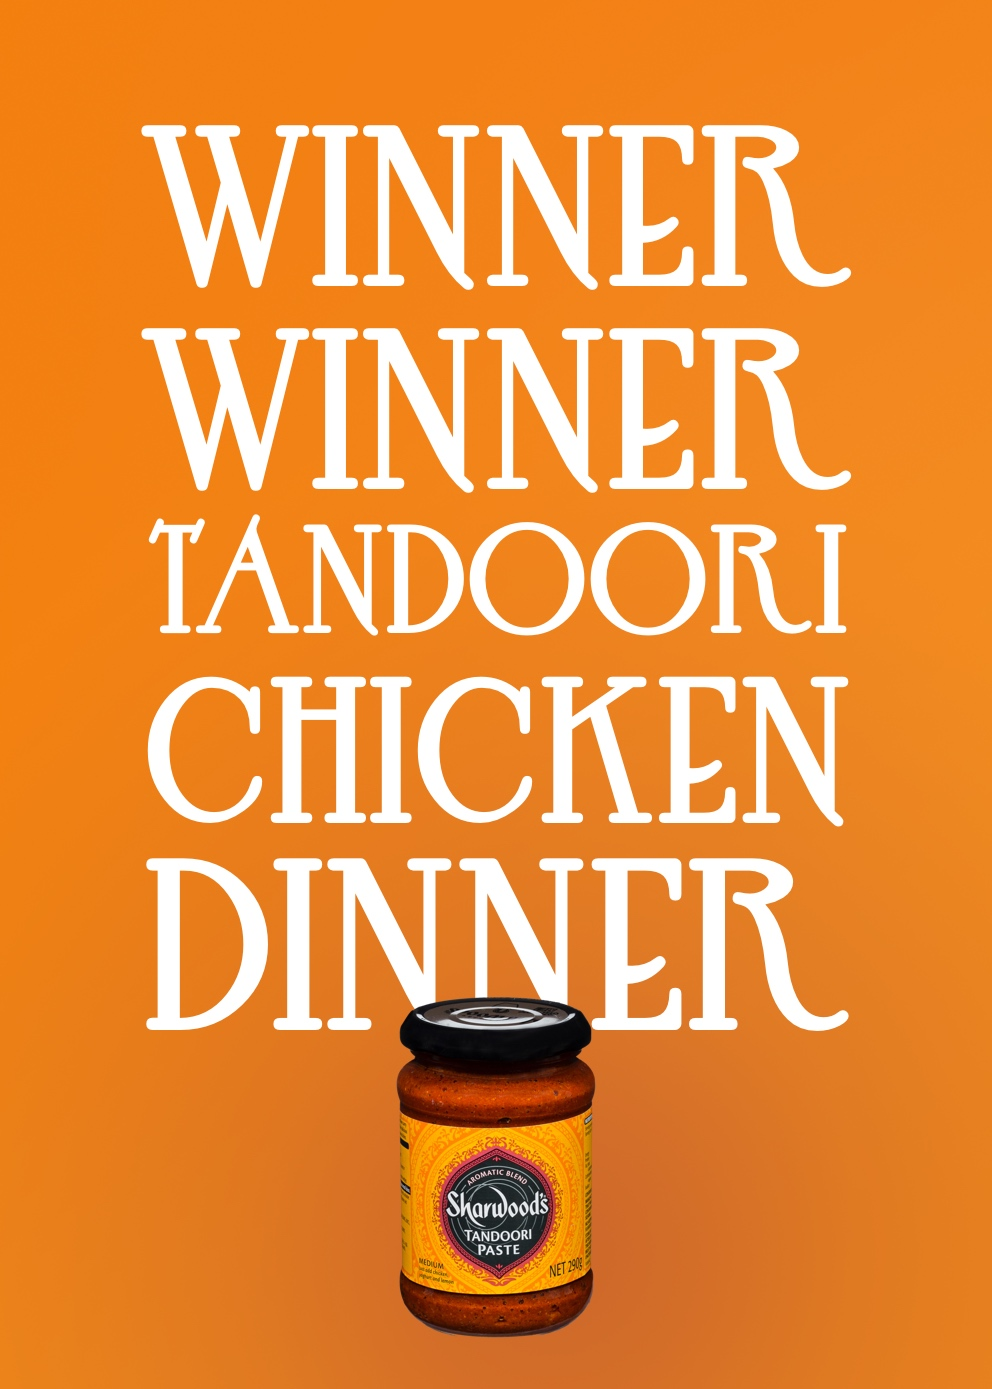 An advertising idea for 'curry sauce - winner winner tandoori chicken dinner